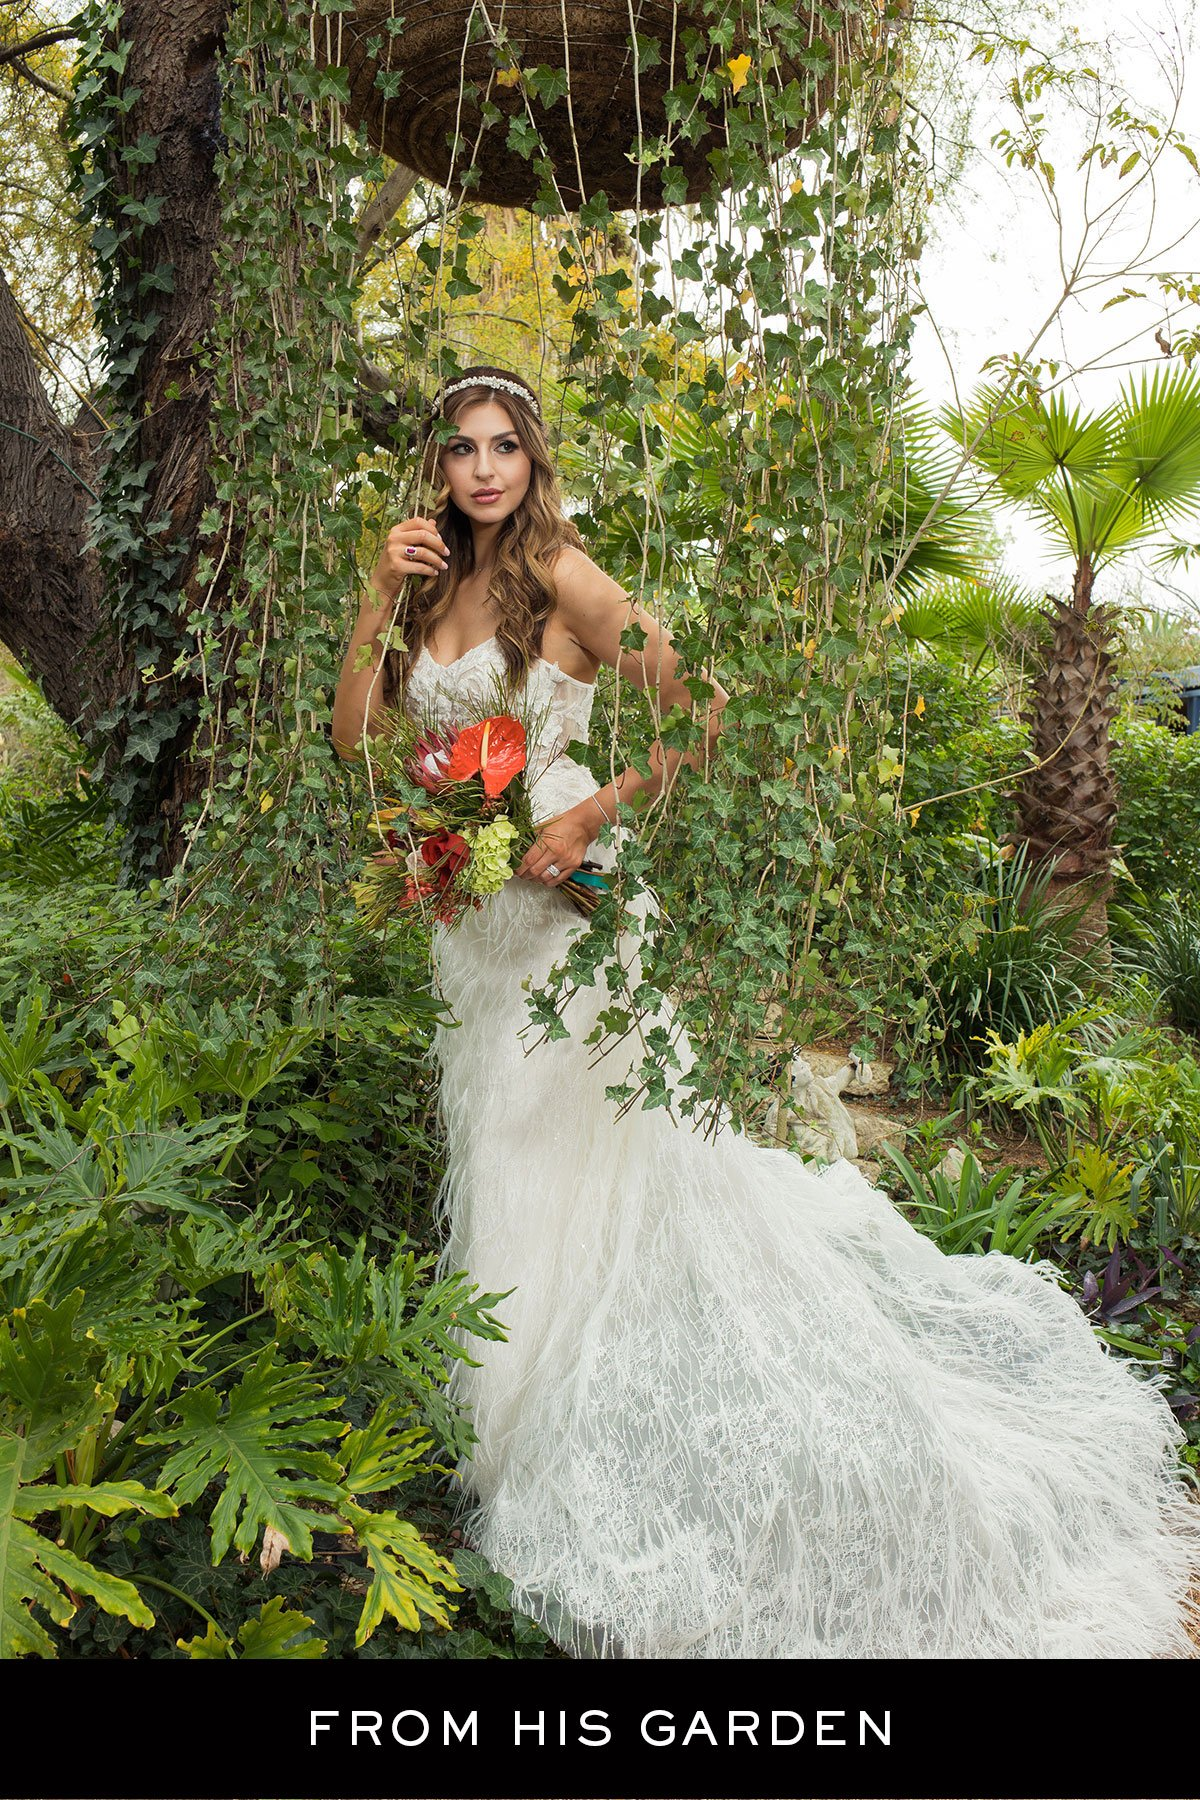 From-His-Garden-Boquet-Shoot-San-Antonio-Weddings-2020-MainC